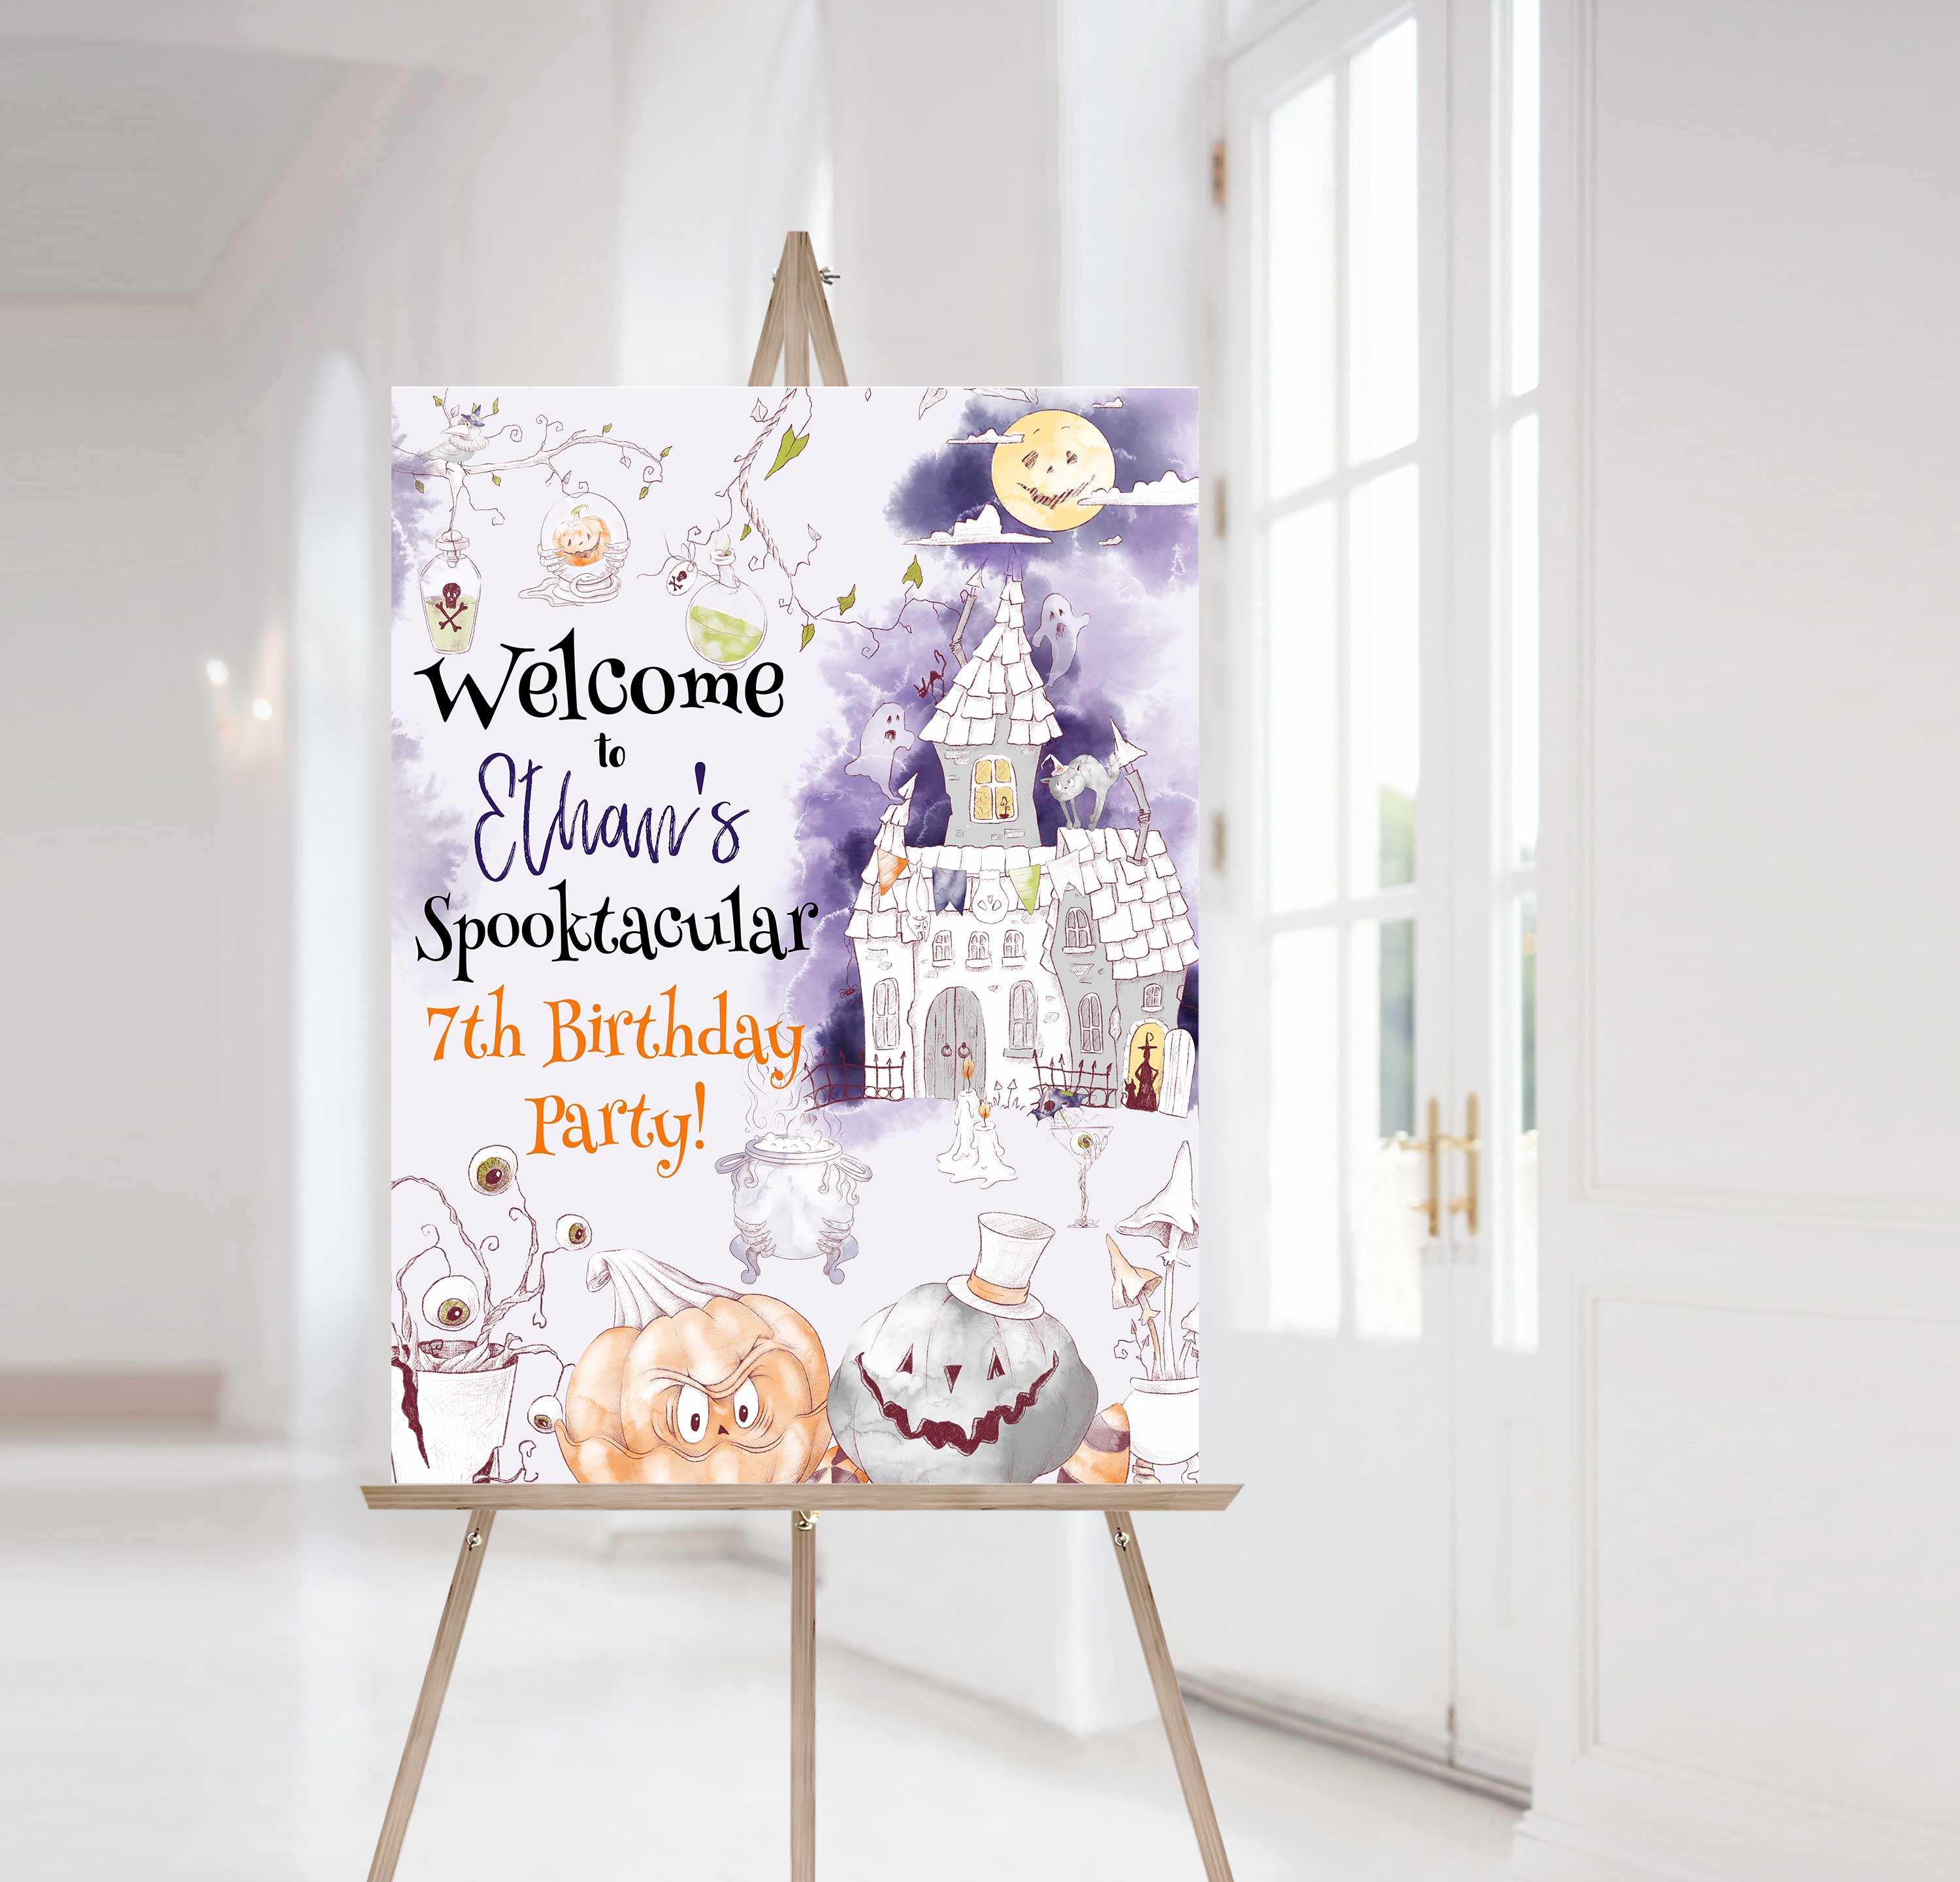 Halloween Editable Welcome Sign -31